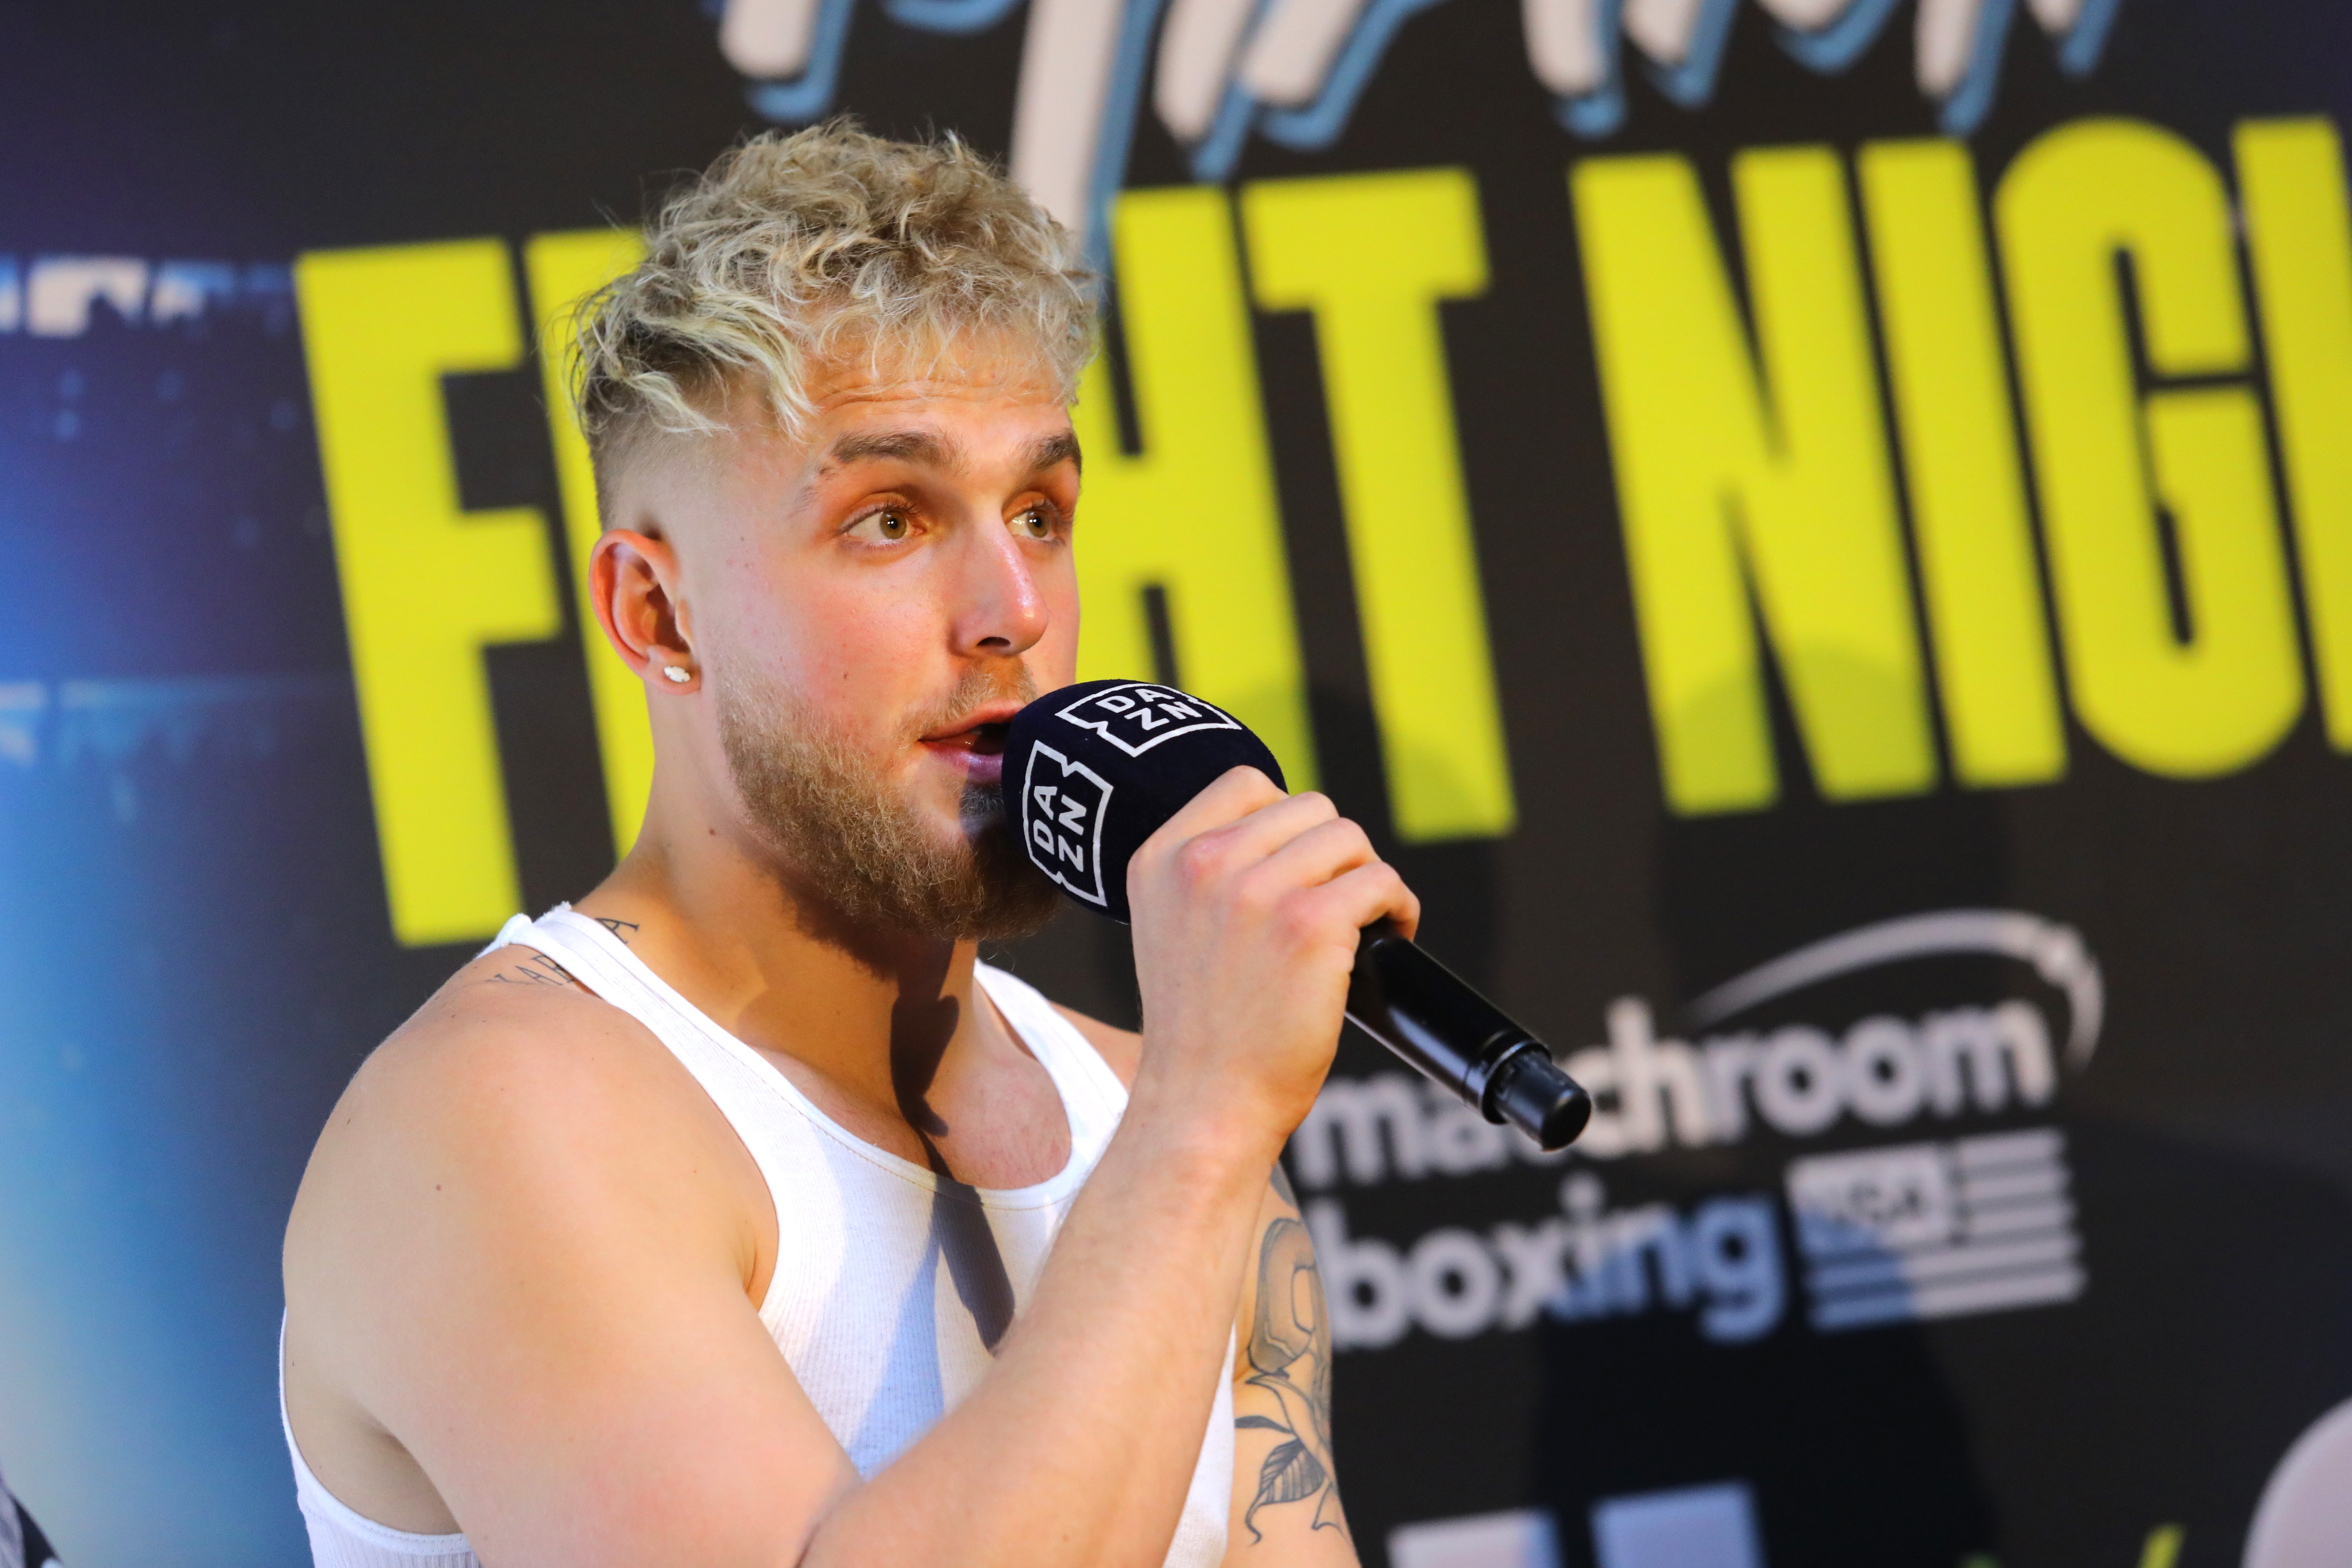 Jake Paul talking on stage before a fight